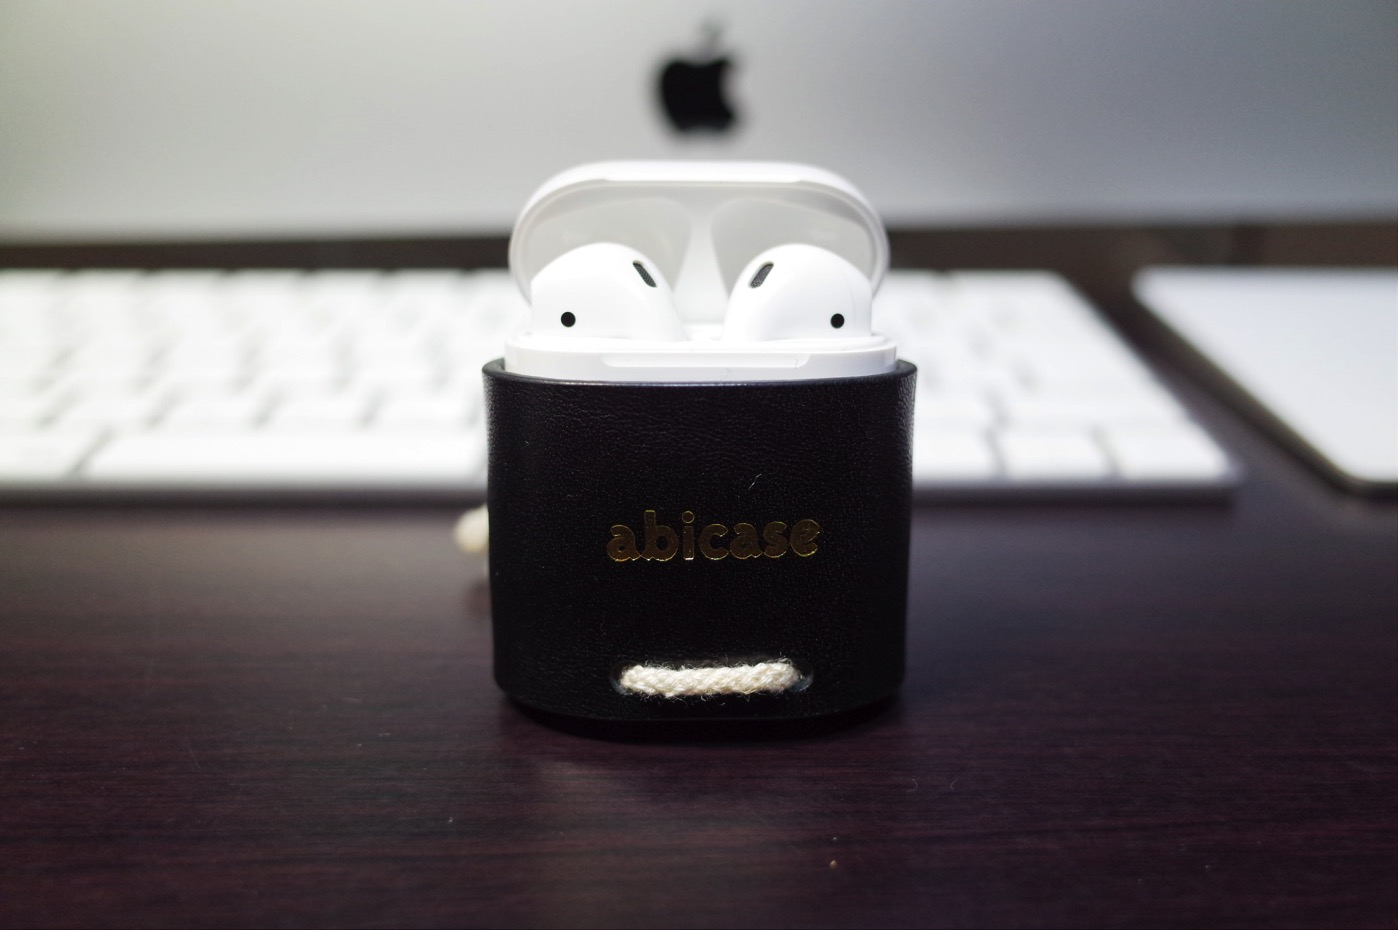 AirPods & abicase-1